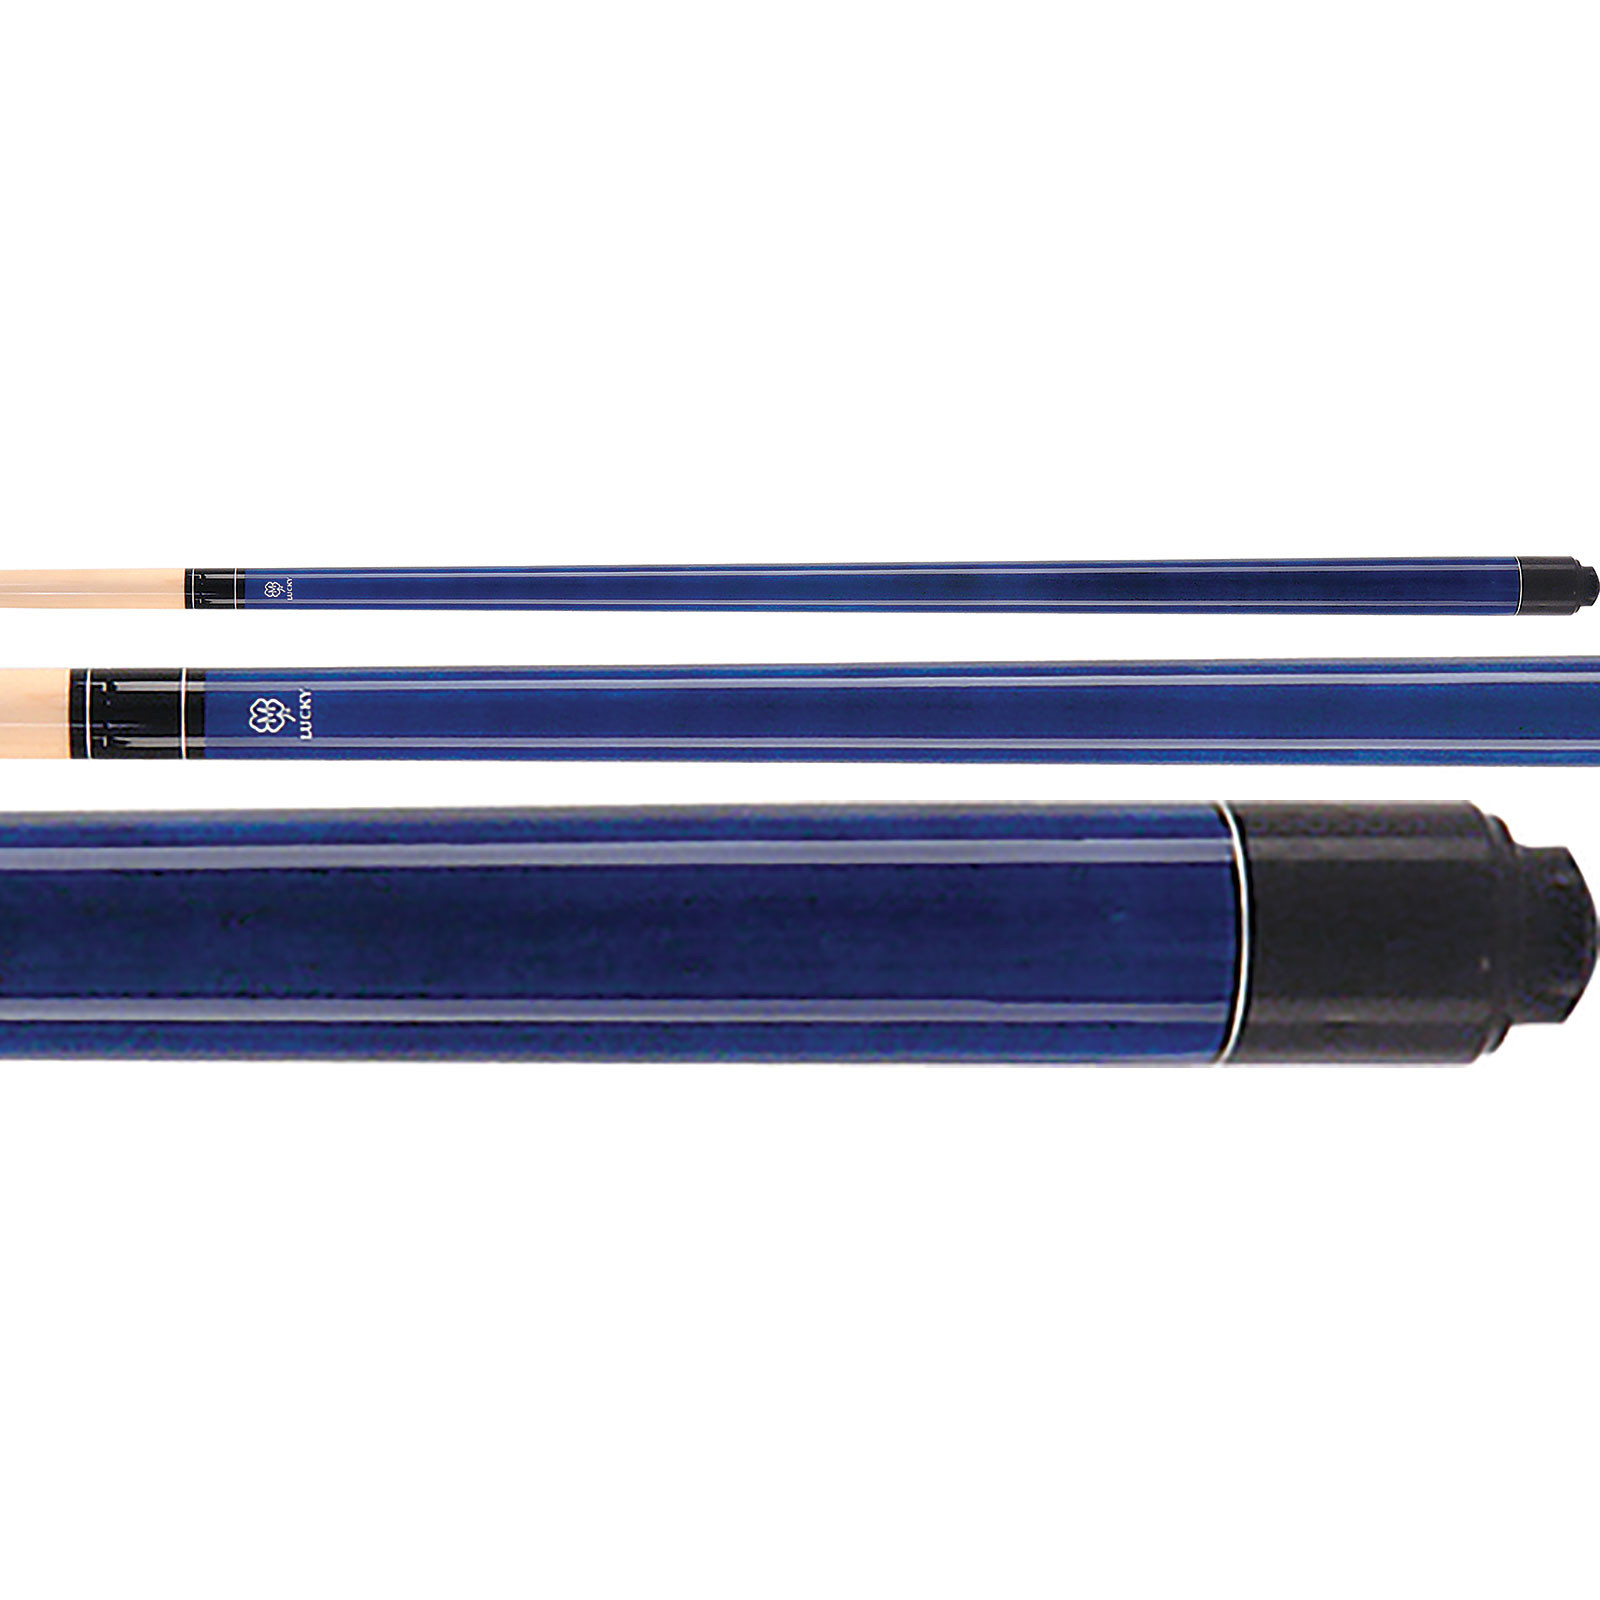 McDermott Lucky Pool Cue, L2, Blue